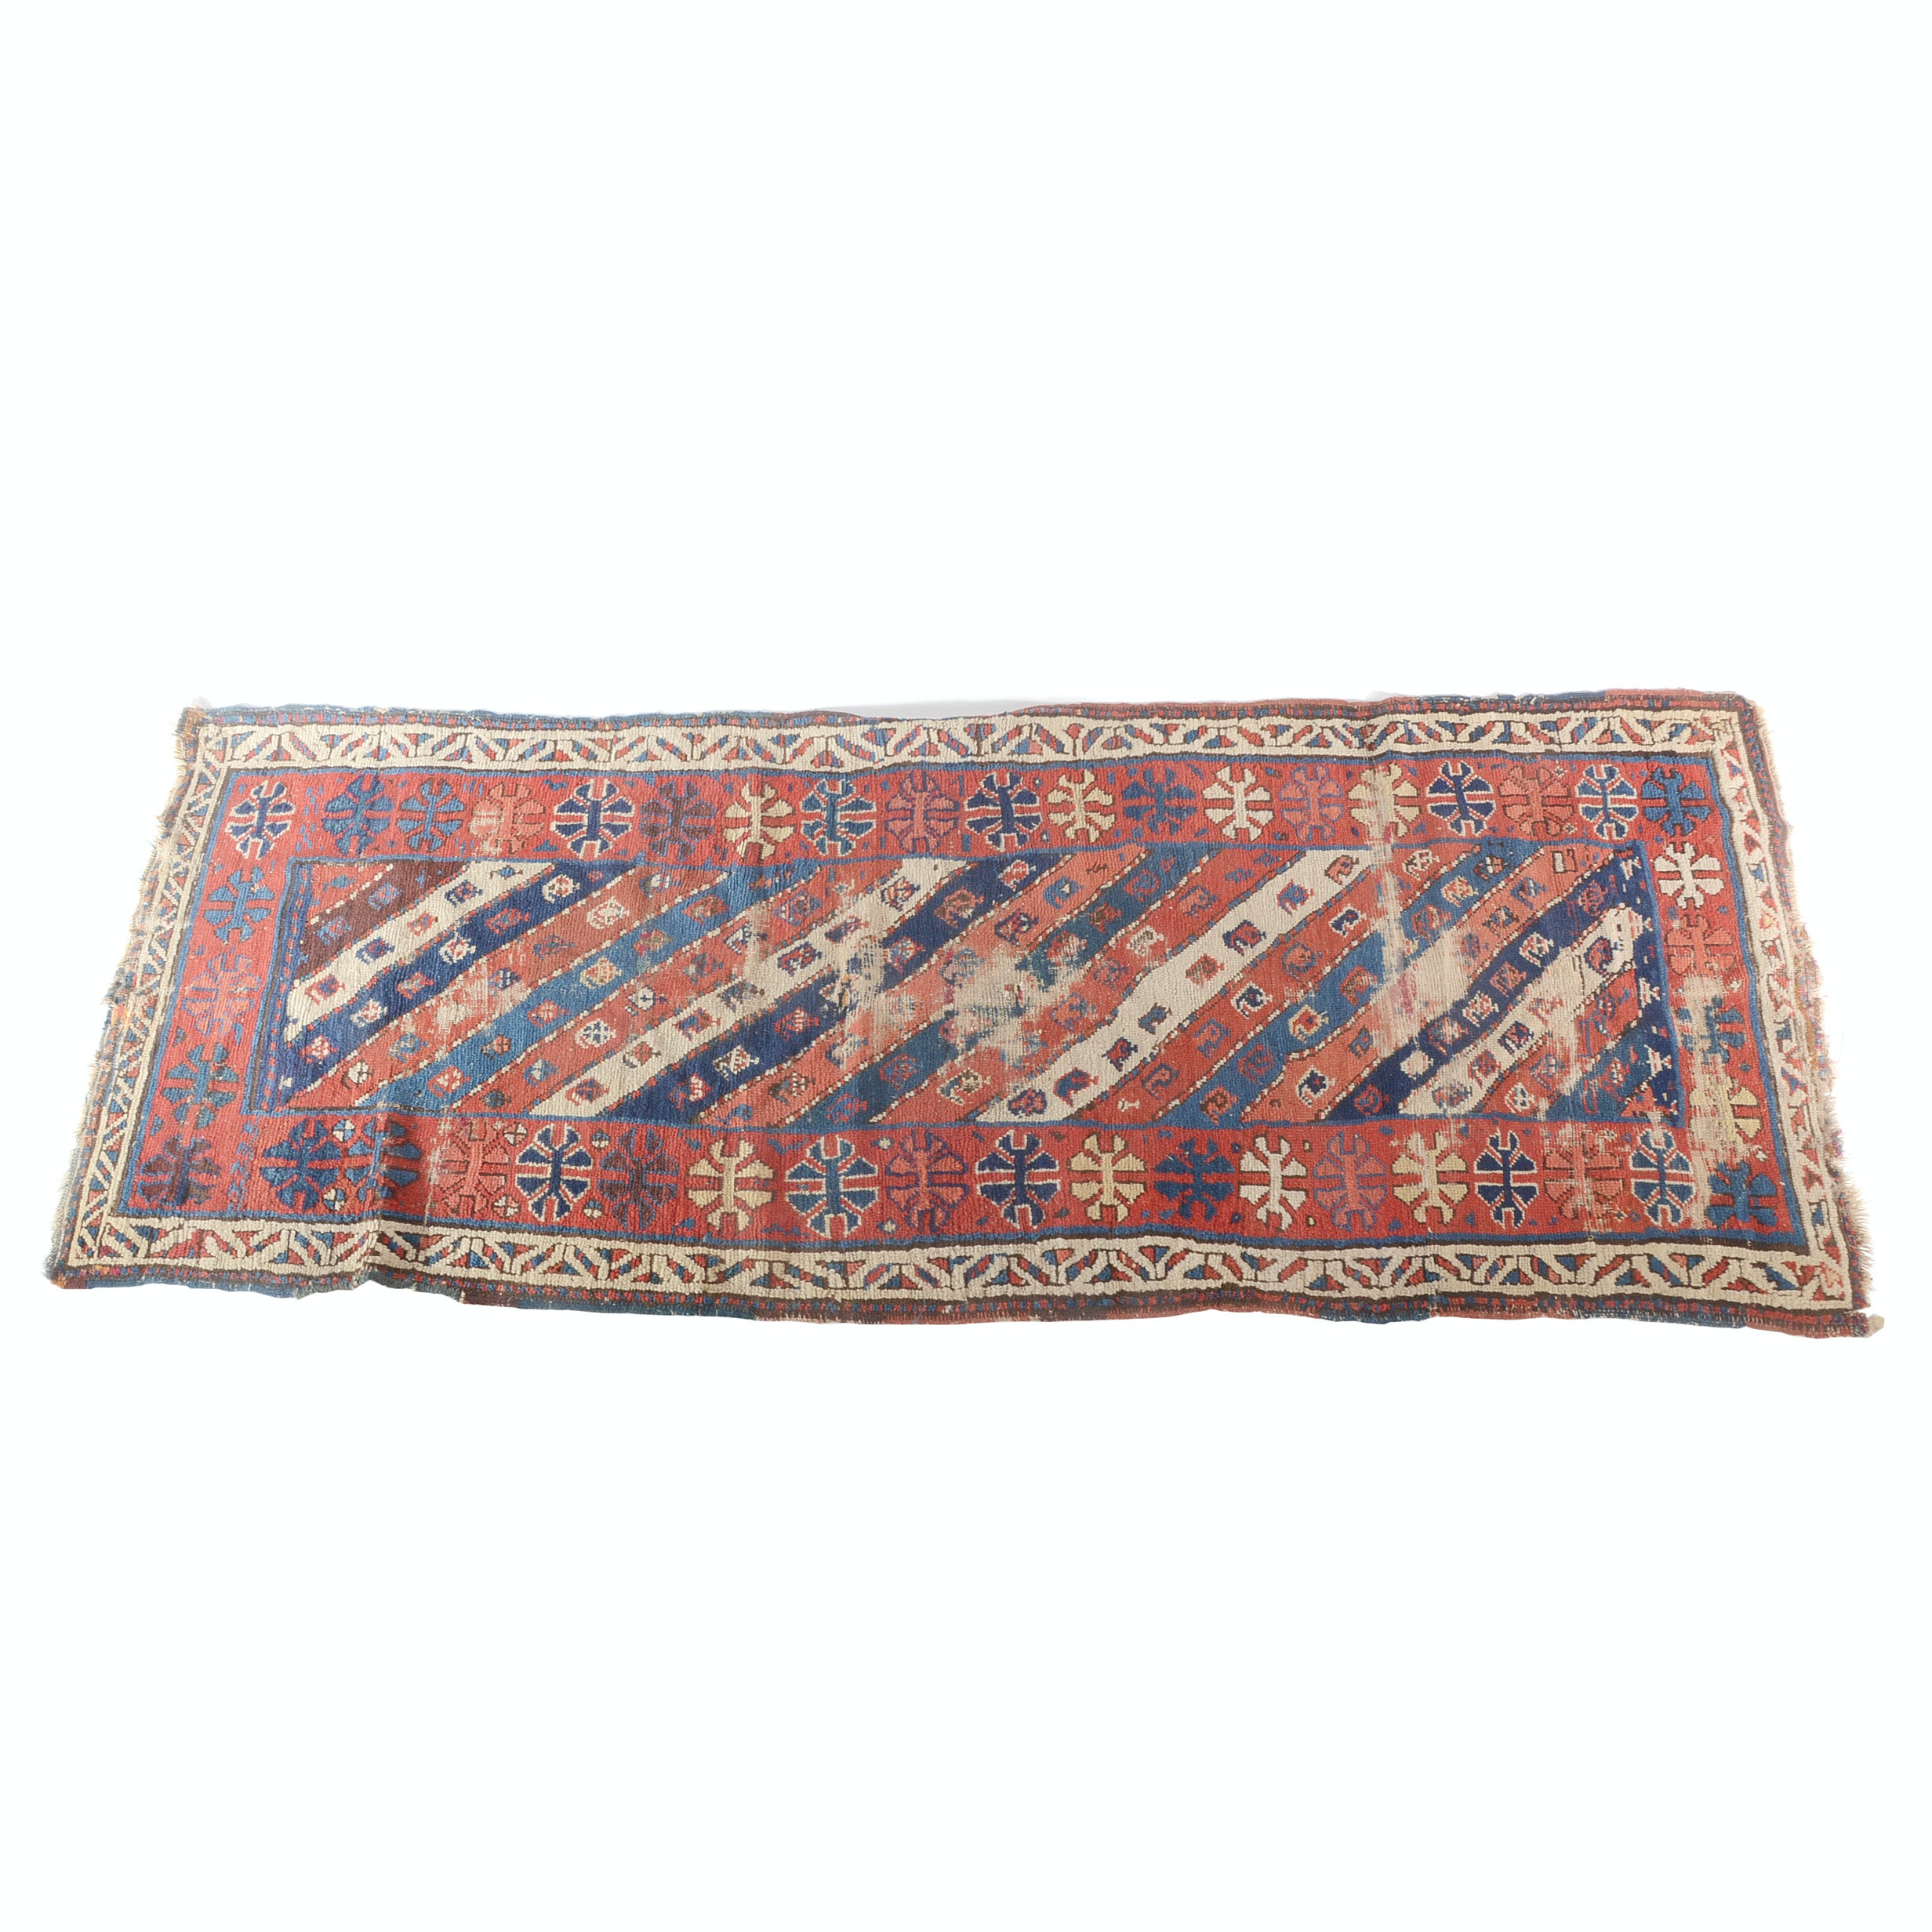 Semi-Antique Caucasian Hand Knotted Wool Runner Rug